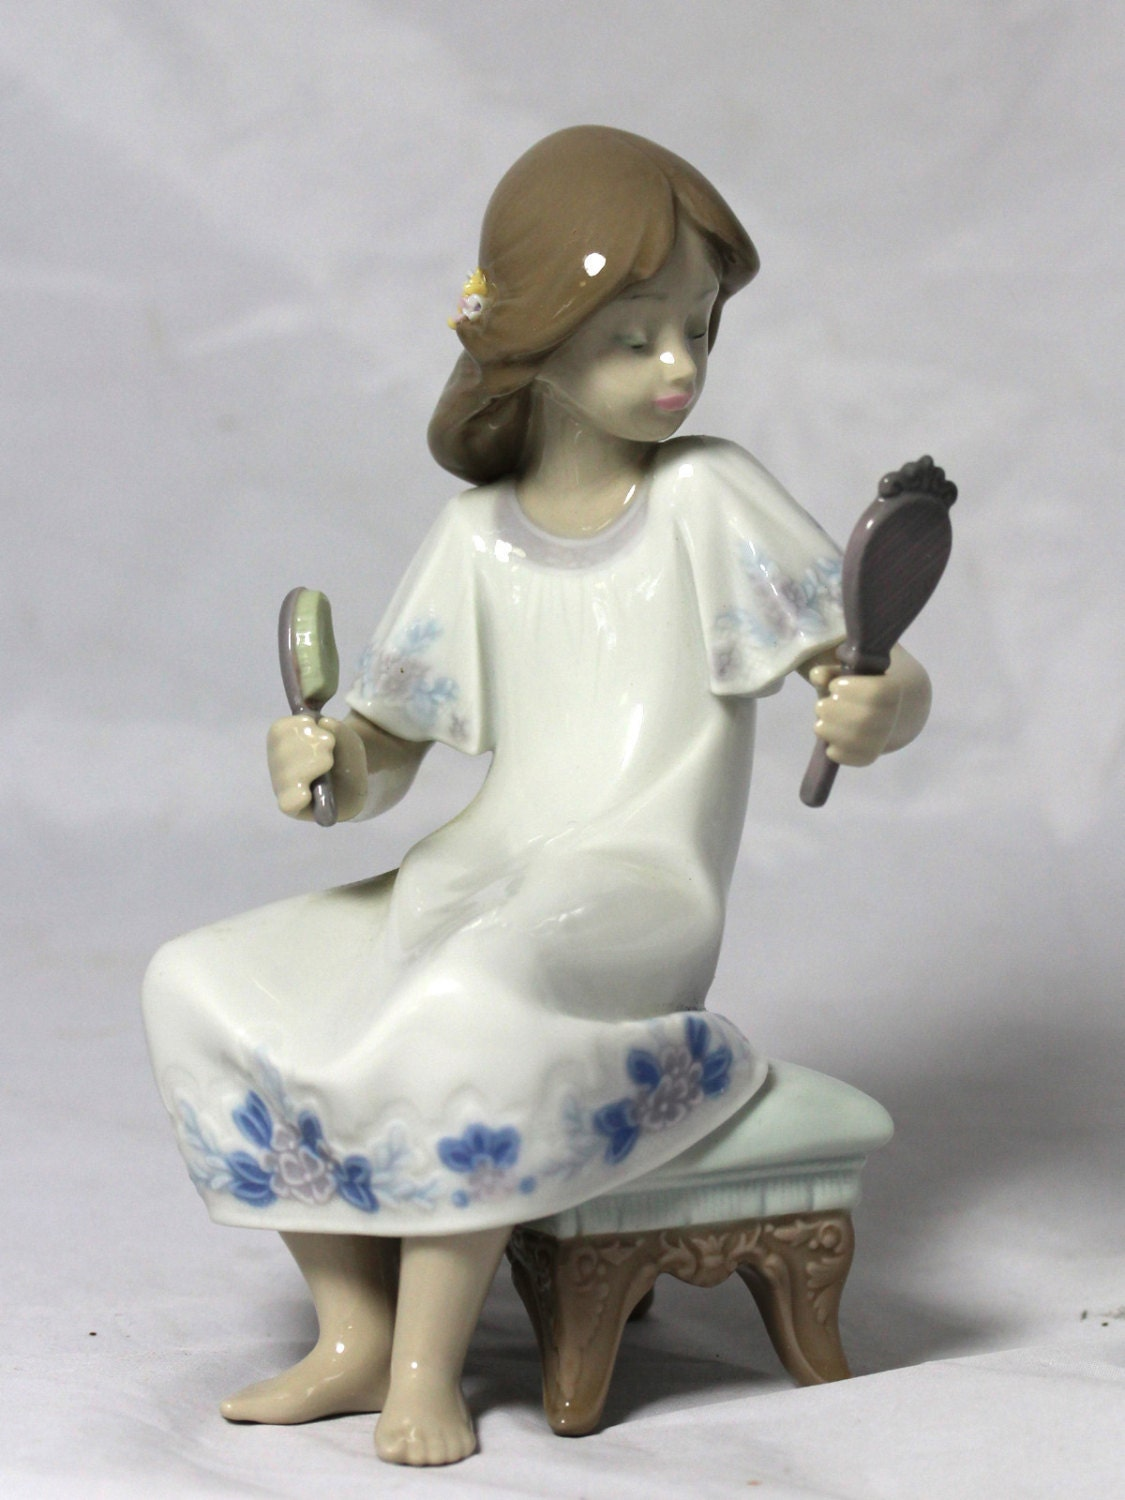 Sale Vintage Lladro I Feel Pretty Figurine Girl With Mirror